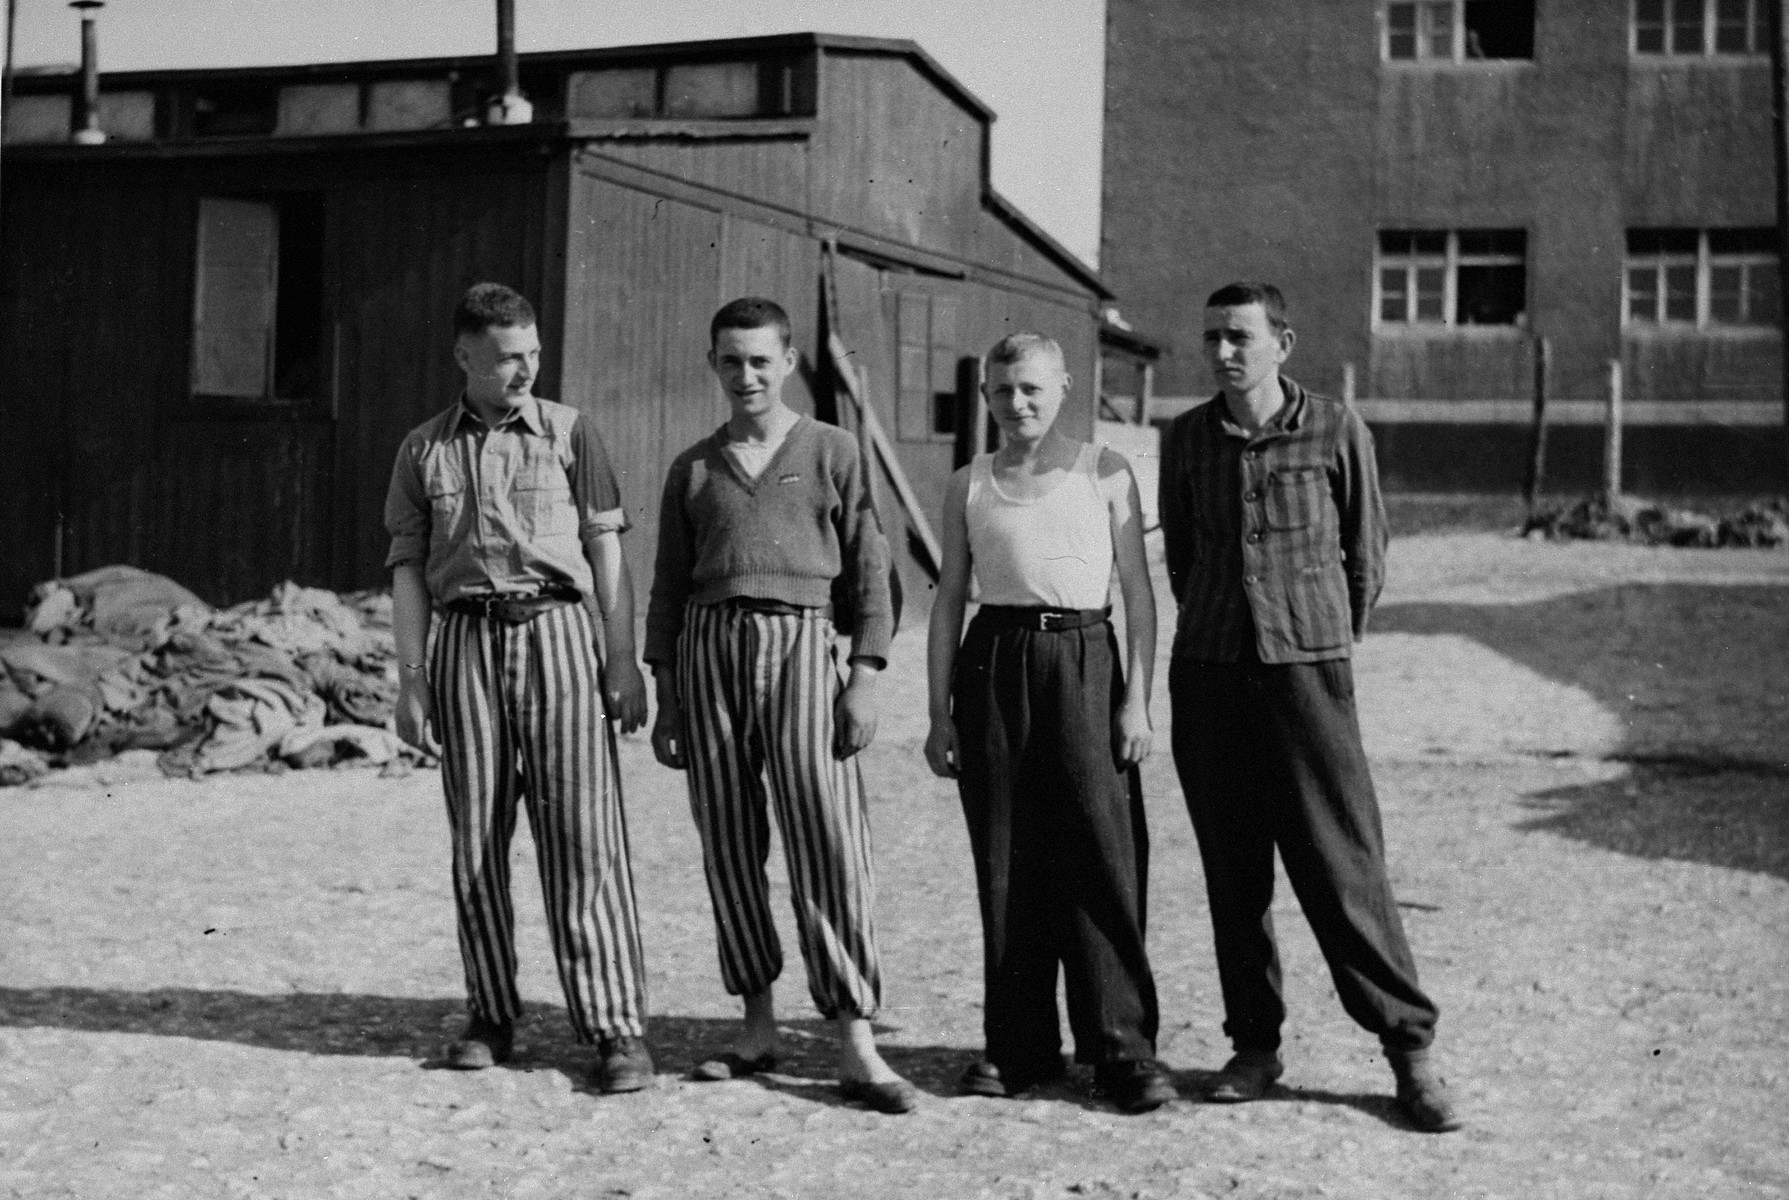 Portrait of four young survivors in Buchenwald concentration camp.